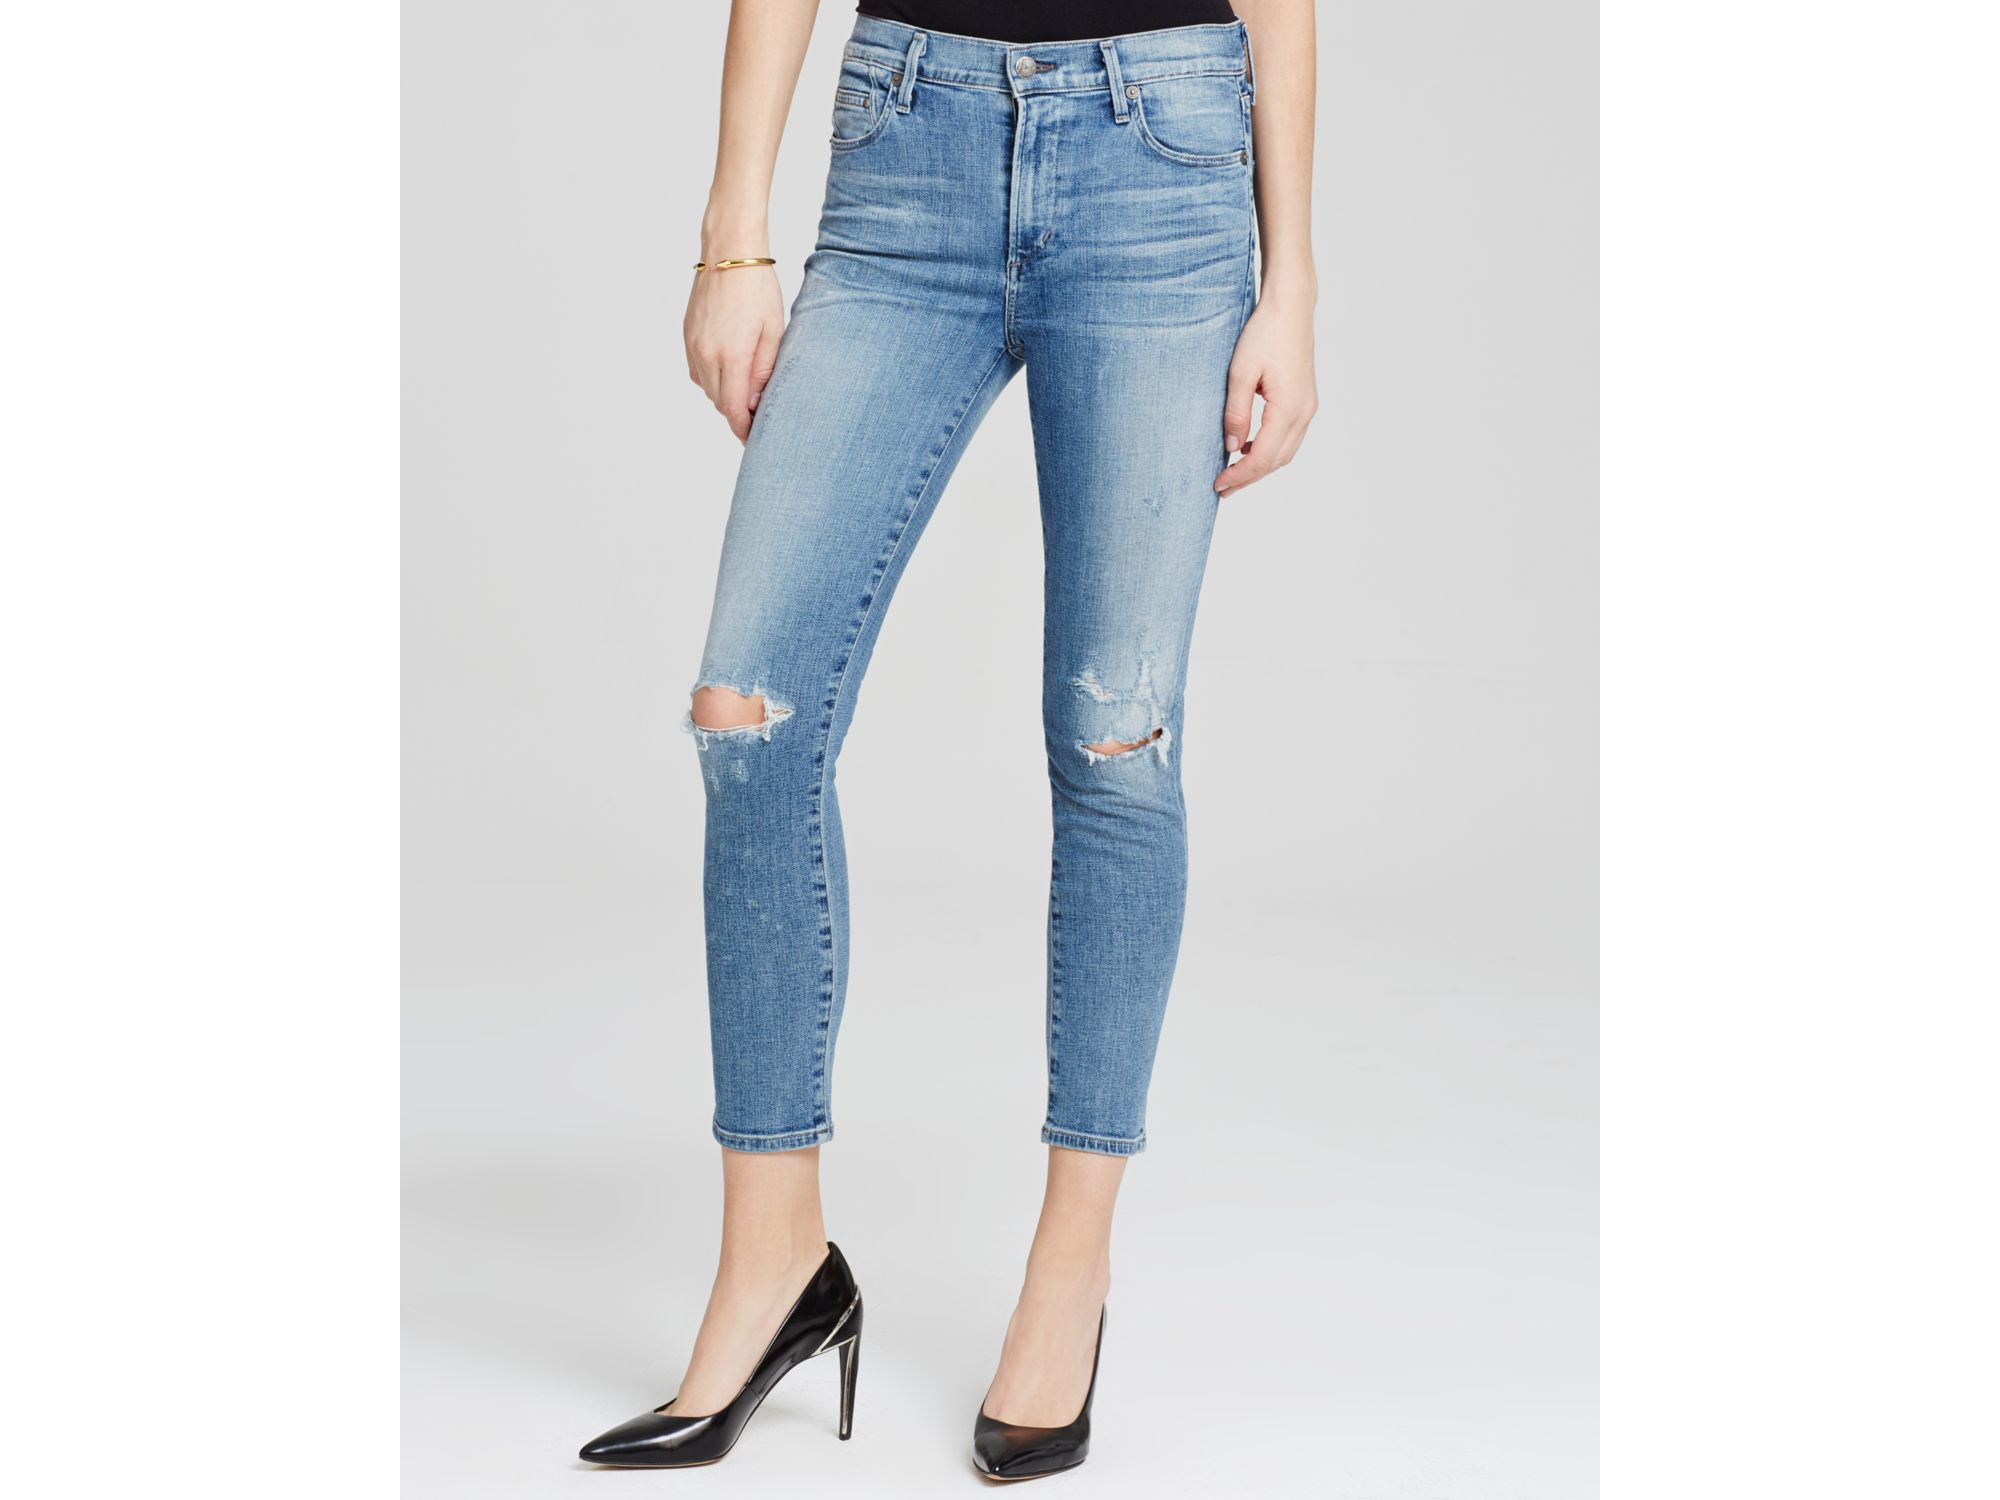 Citizens Of Humanity skinny cropped jeans 2018 Newest Online C5Ijw7EJU